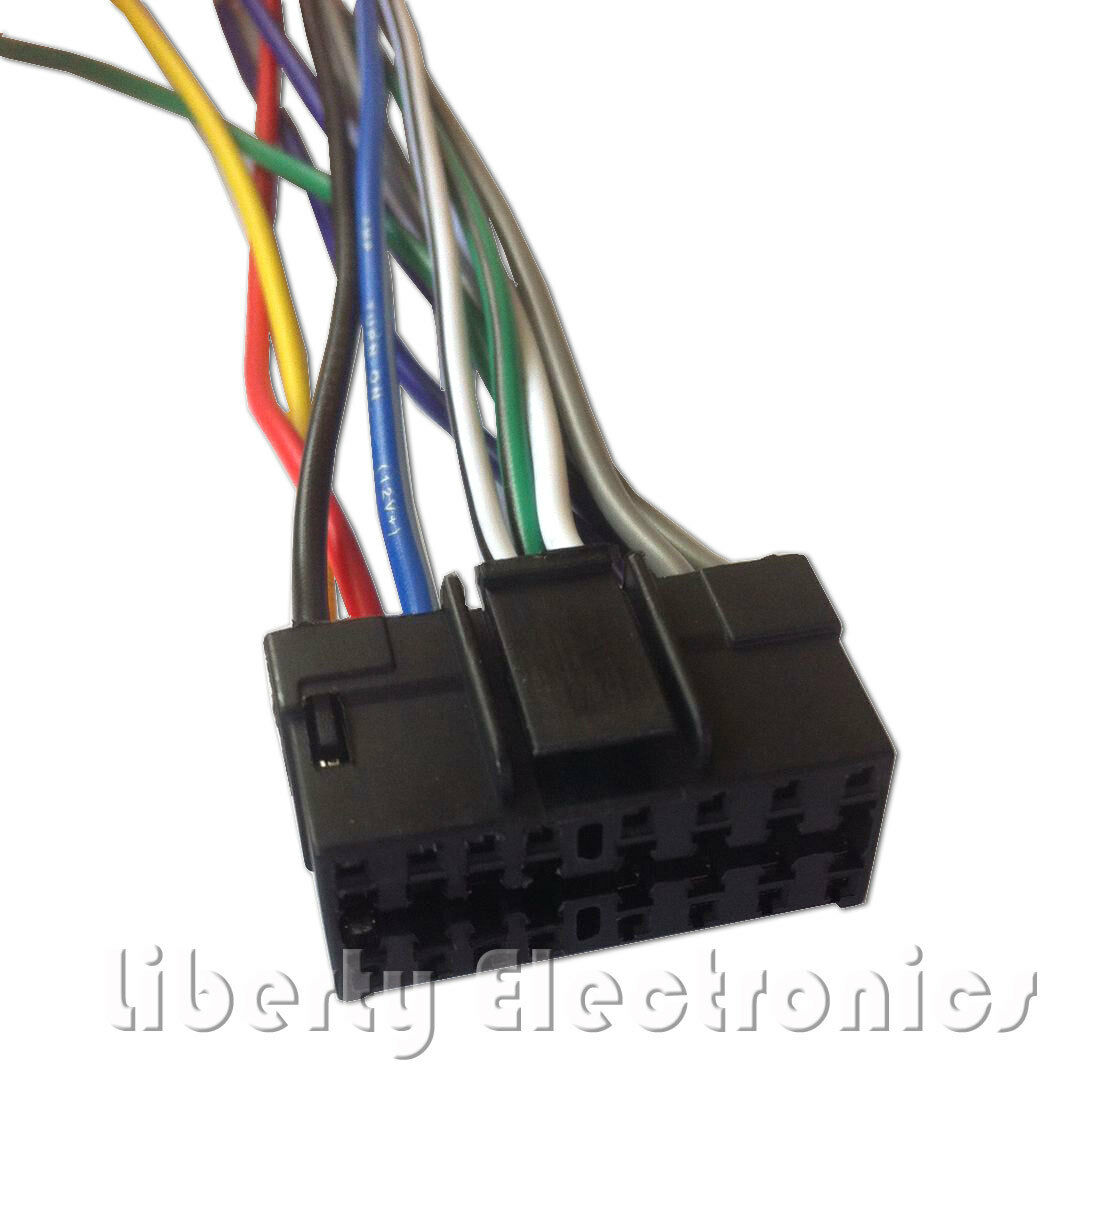 NEW WIRE HARNESS for PIONEER DEH P20 DEH P200?resize\\\\\\\=665%2C724\\\\\\\&ssl\\\\\\\=1 deh 800prs wire diagram,prs \u2022 j squared co pioneer premier wiring harness at eliteediting.co